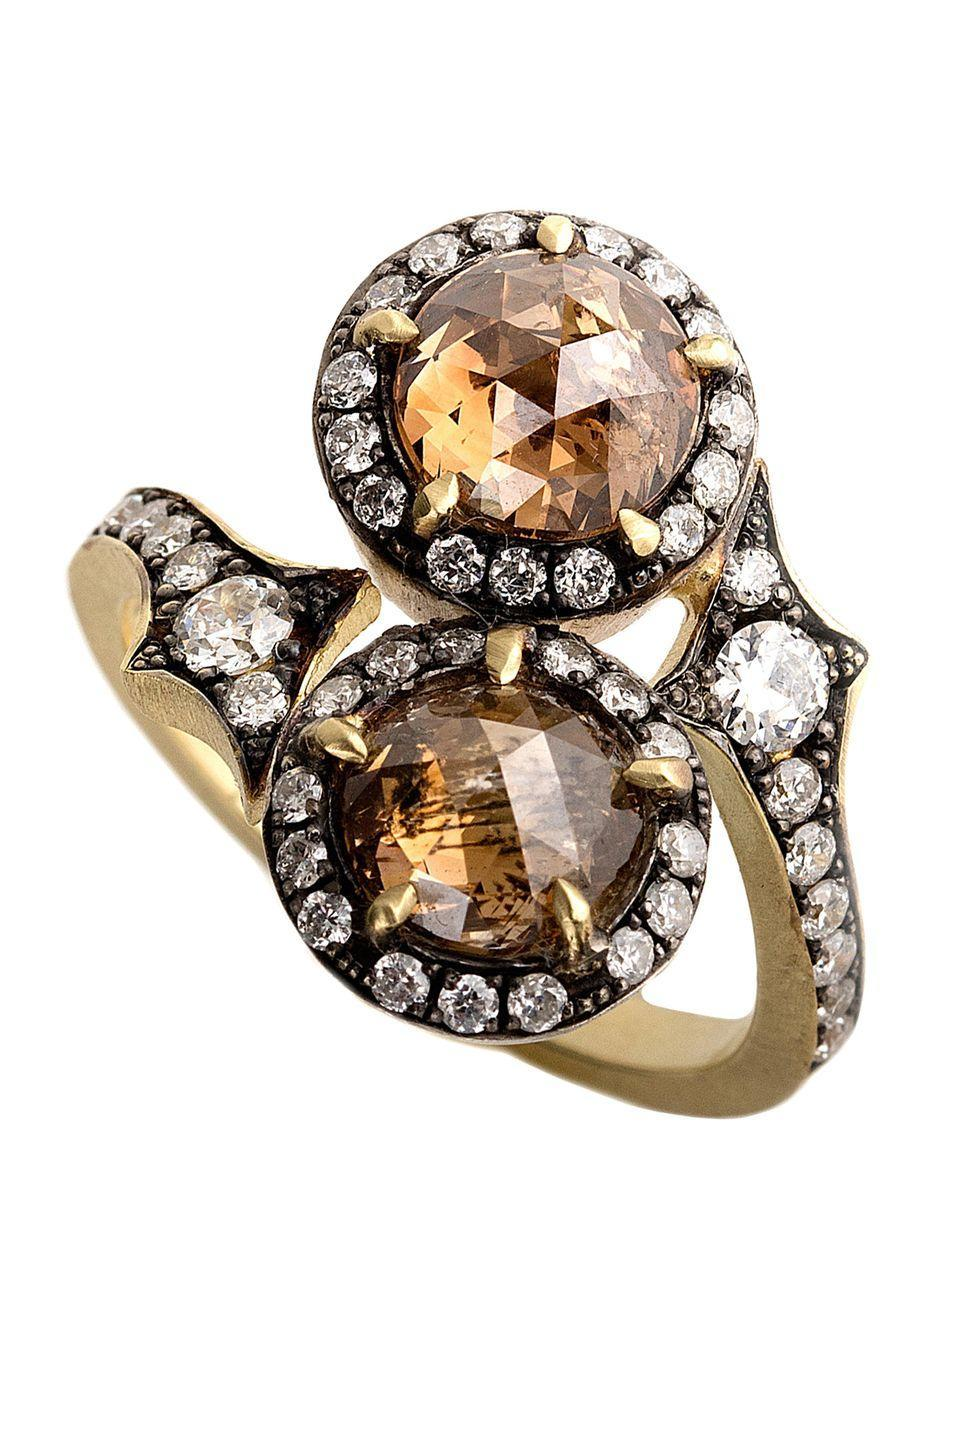 "<p><strong><em>Sylva & Cie</em></strong><em> 18-Karat Yellow Gold & Silver Champagne Diamond Ring, price upon request, <a href=""https://shop.mitchellstores.com/products/981609-sylva-and-cie-rings"" rel=""nofollow noopener"" target=""_blank"" data-ylk=""slk:shop.mitchellstores.com"" class=""link rapid-noclick-resp"">shop.mitchellstores.com</a></em></p><p><a class=""link rapid-noclick-resp"" href=""https://shop.mitchellstores.com/products/981609-sylva-and-cie-rings"" rel=""nofollow noopener"" target=""_blank"" data-ylk=""slk:SHOP"">SHOP</a></p>"